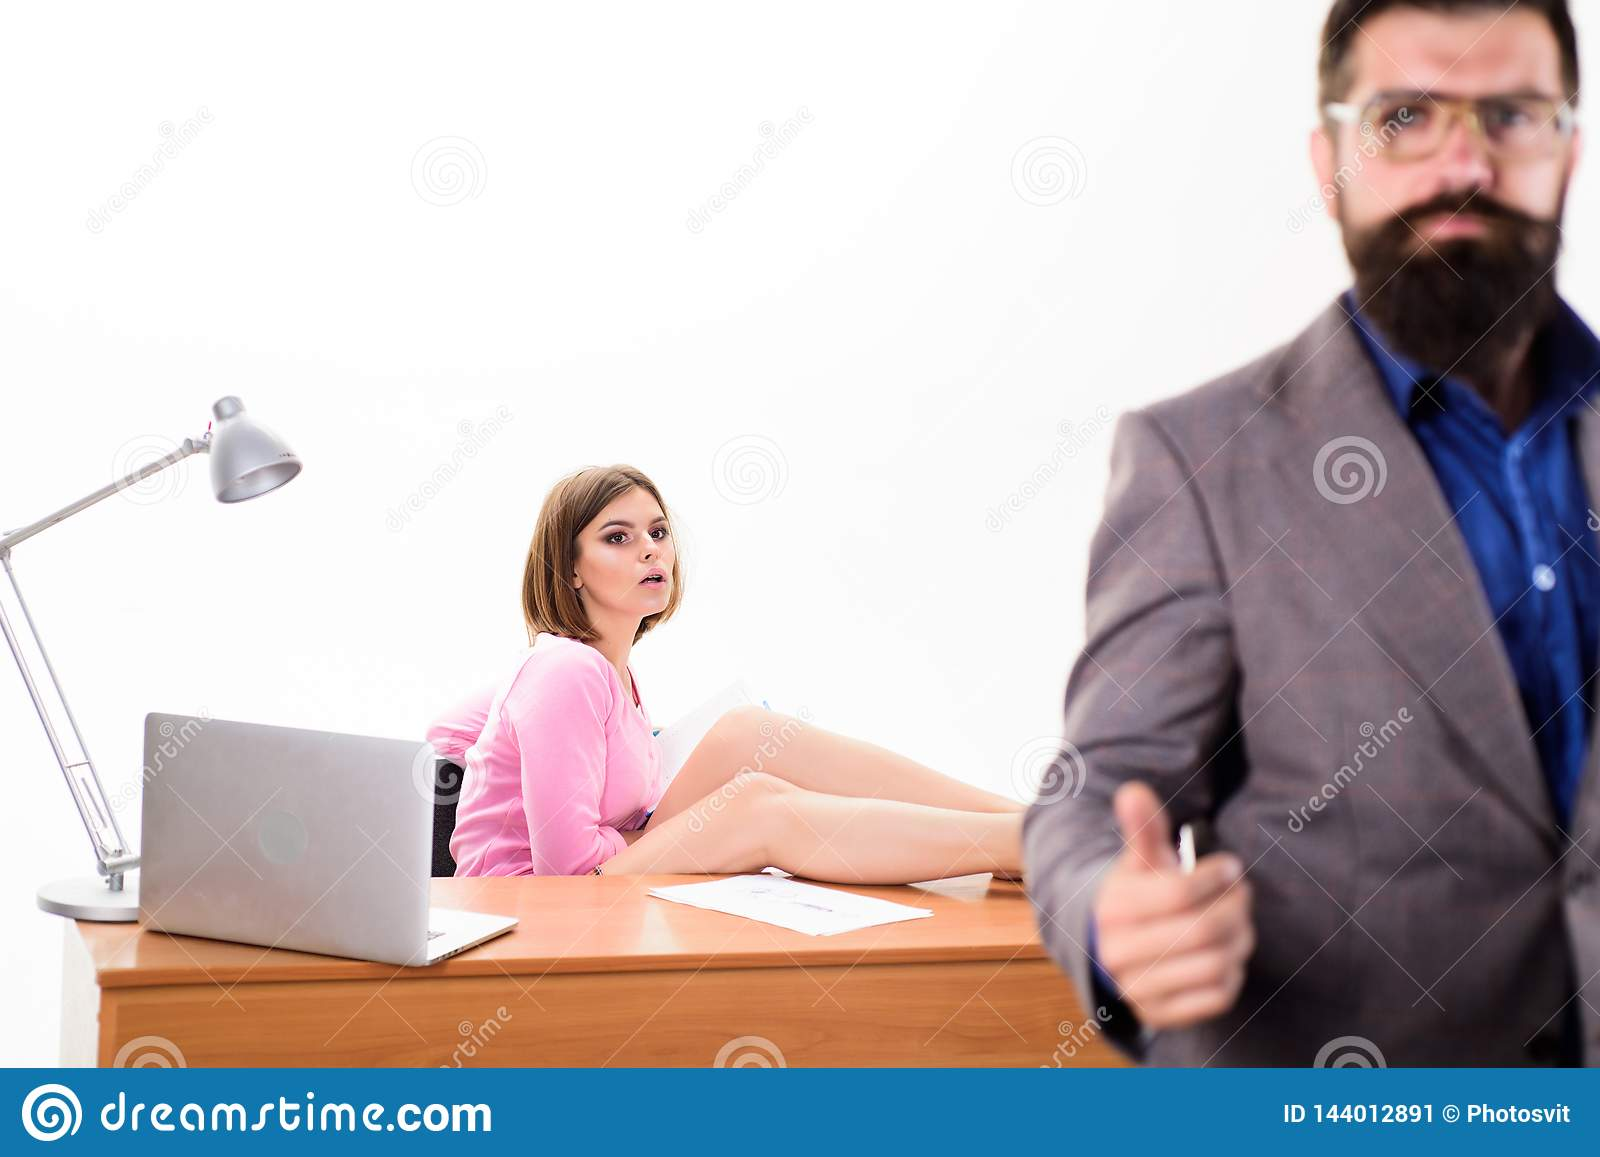 Human resources for business. Human resources manager after job interview. Sexy interviewer with candidate in human